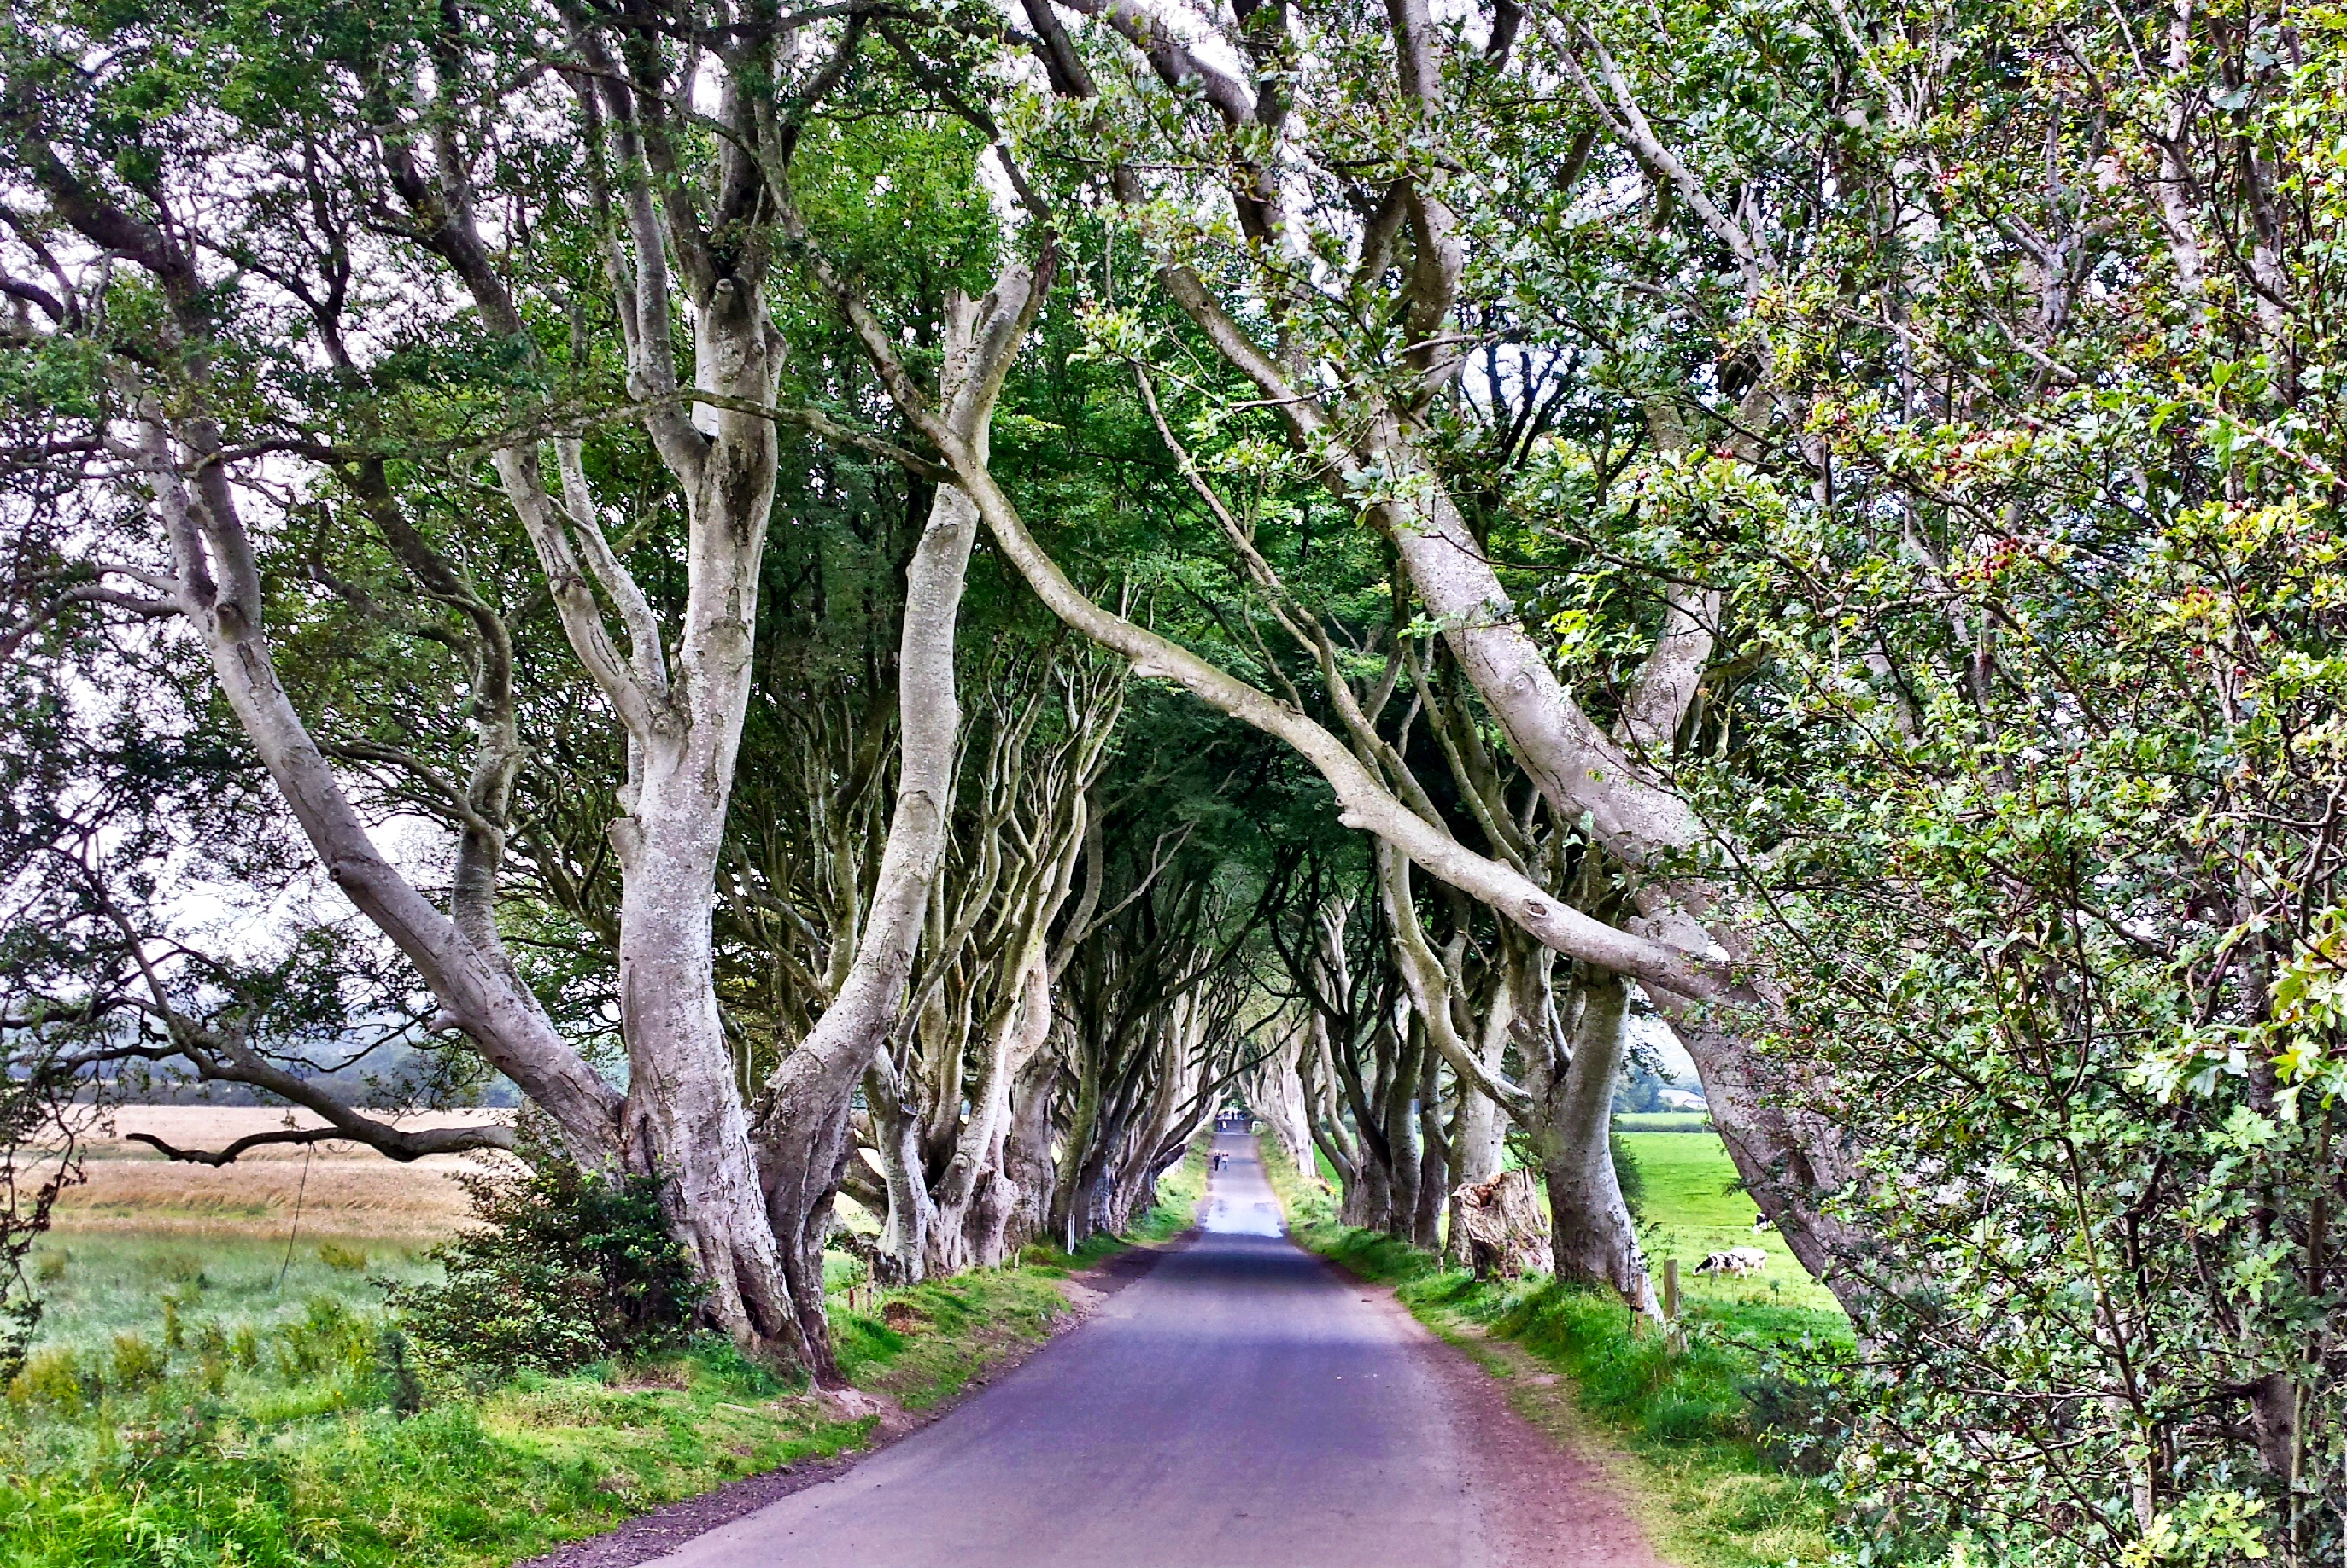 Game of Thrones fans need to visit the Dark Hedges in Ireland